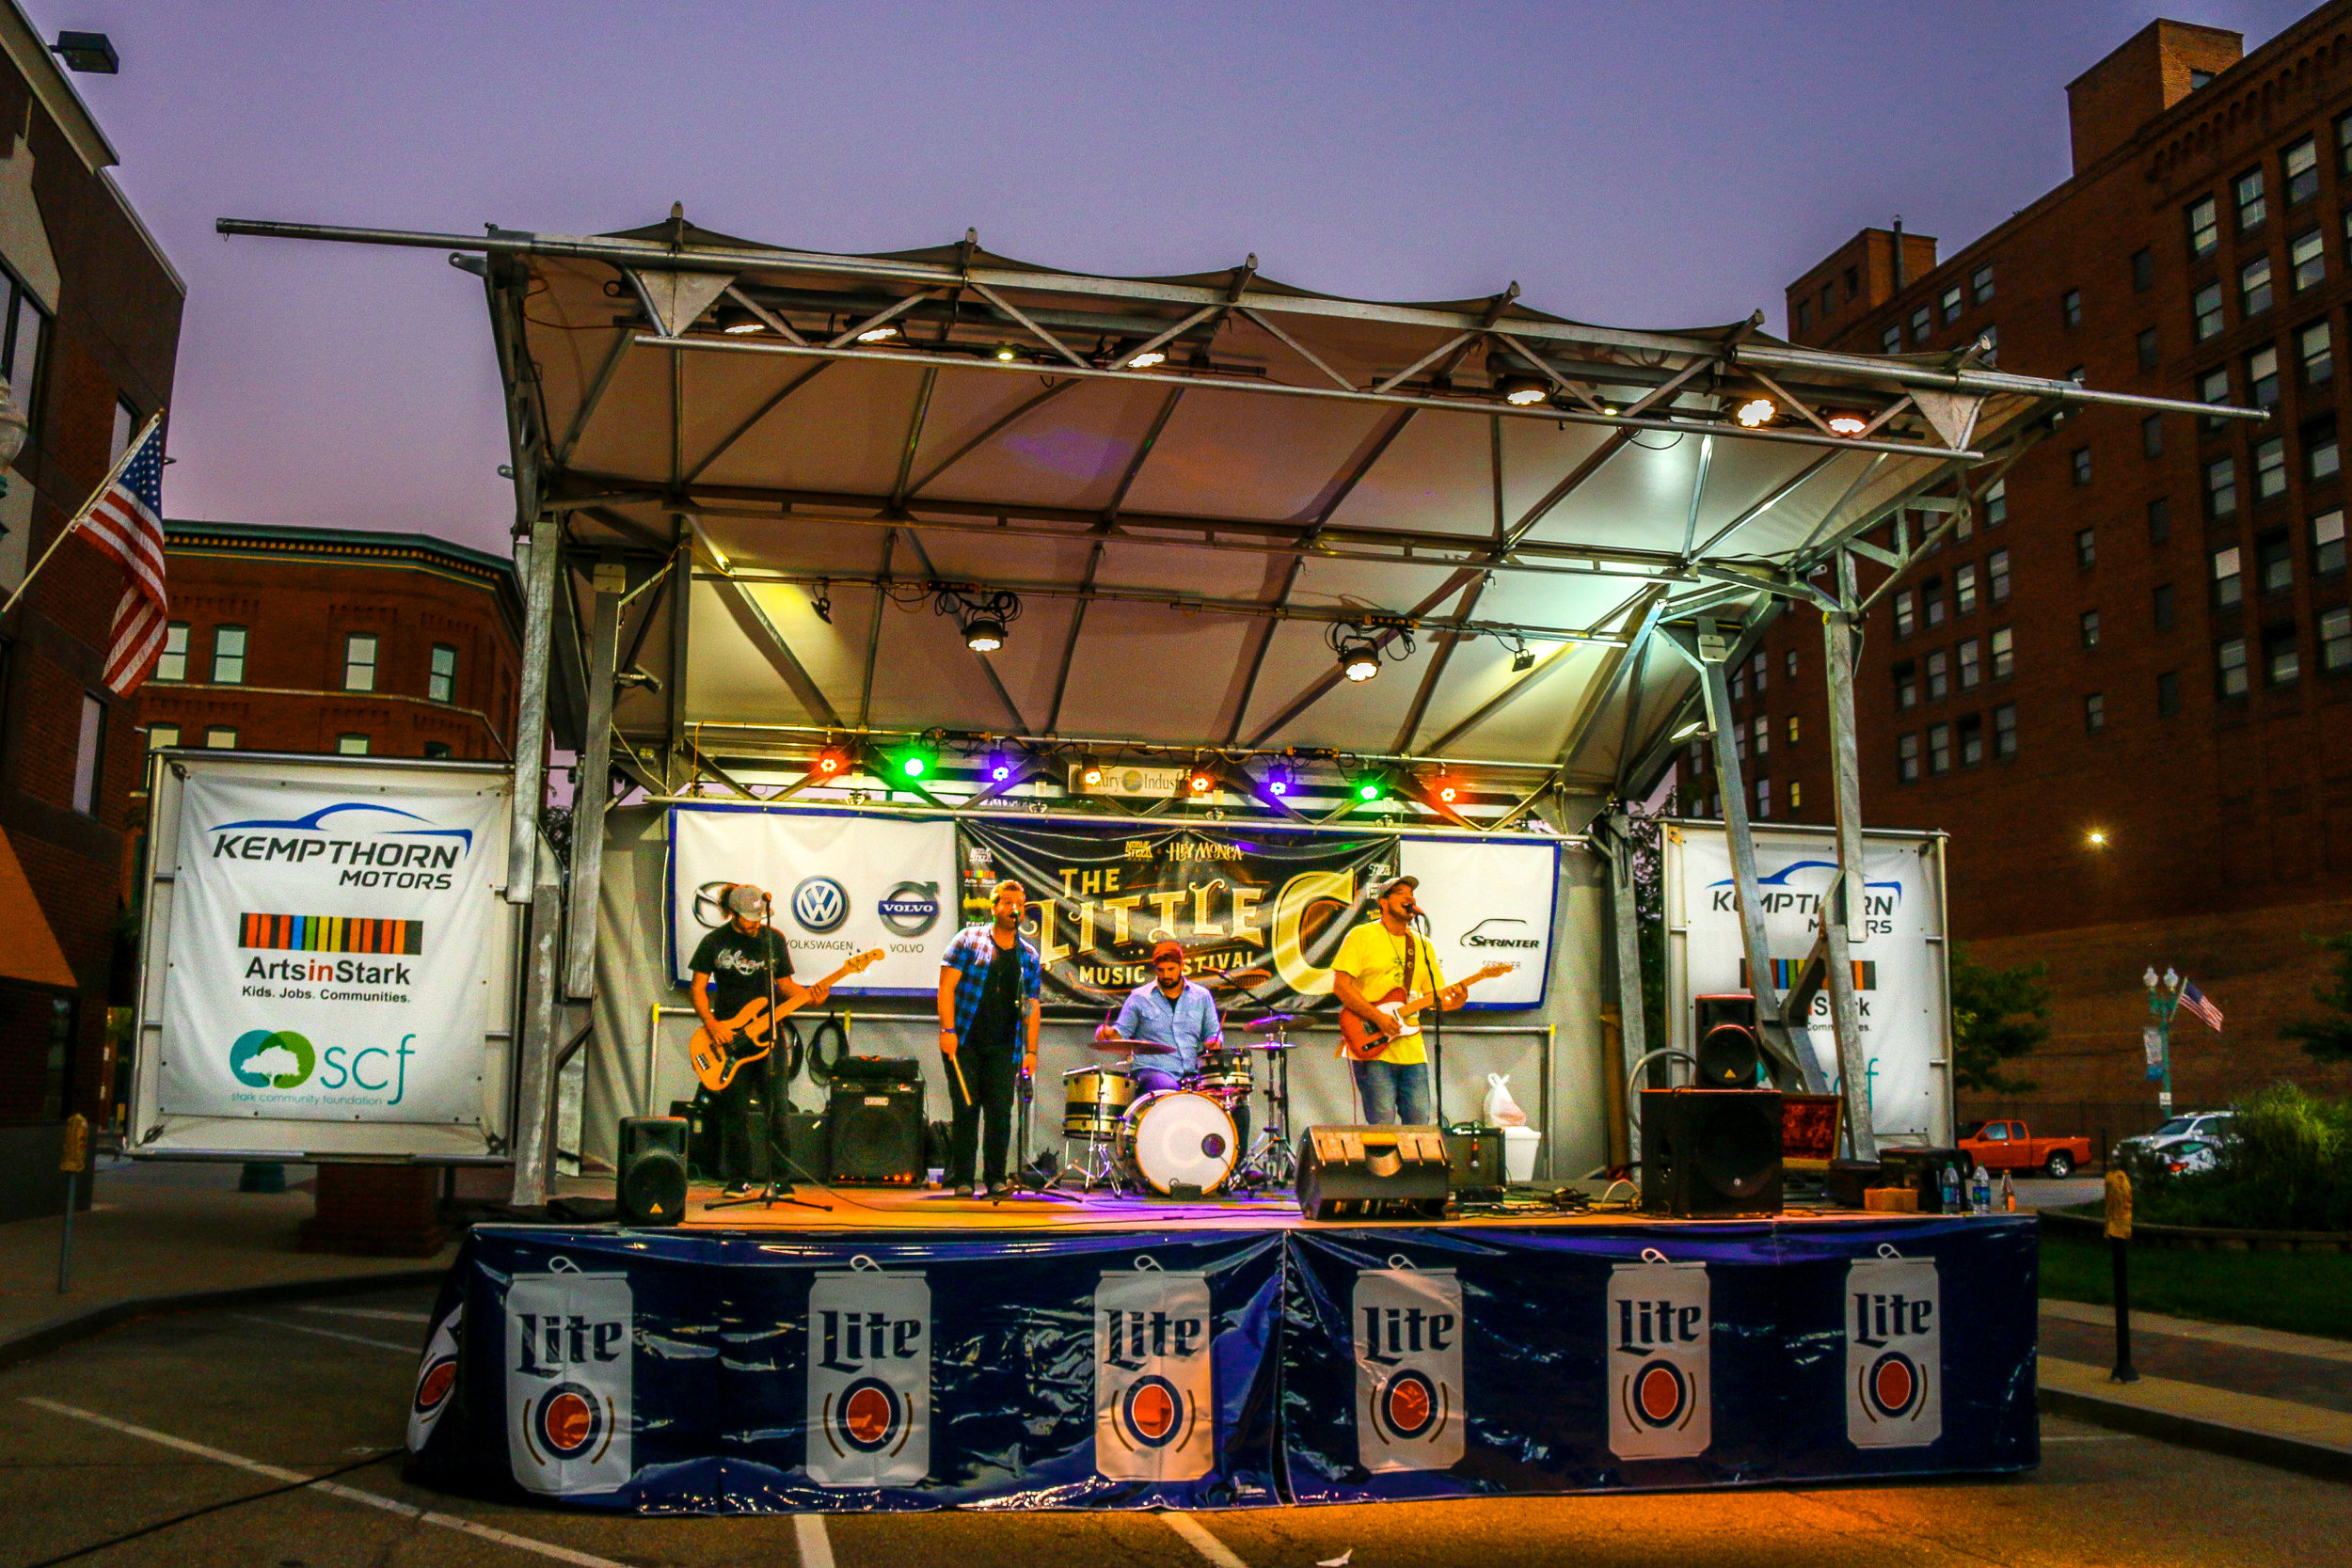 Hey Monea Opening the Little C Music Festival in Downtown Canton, Ohio